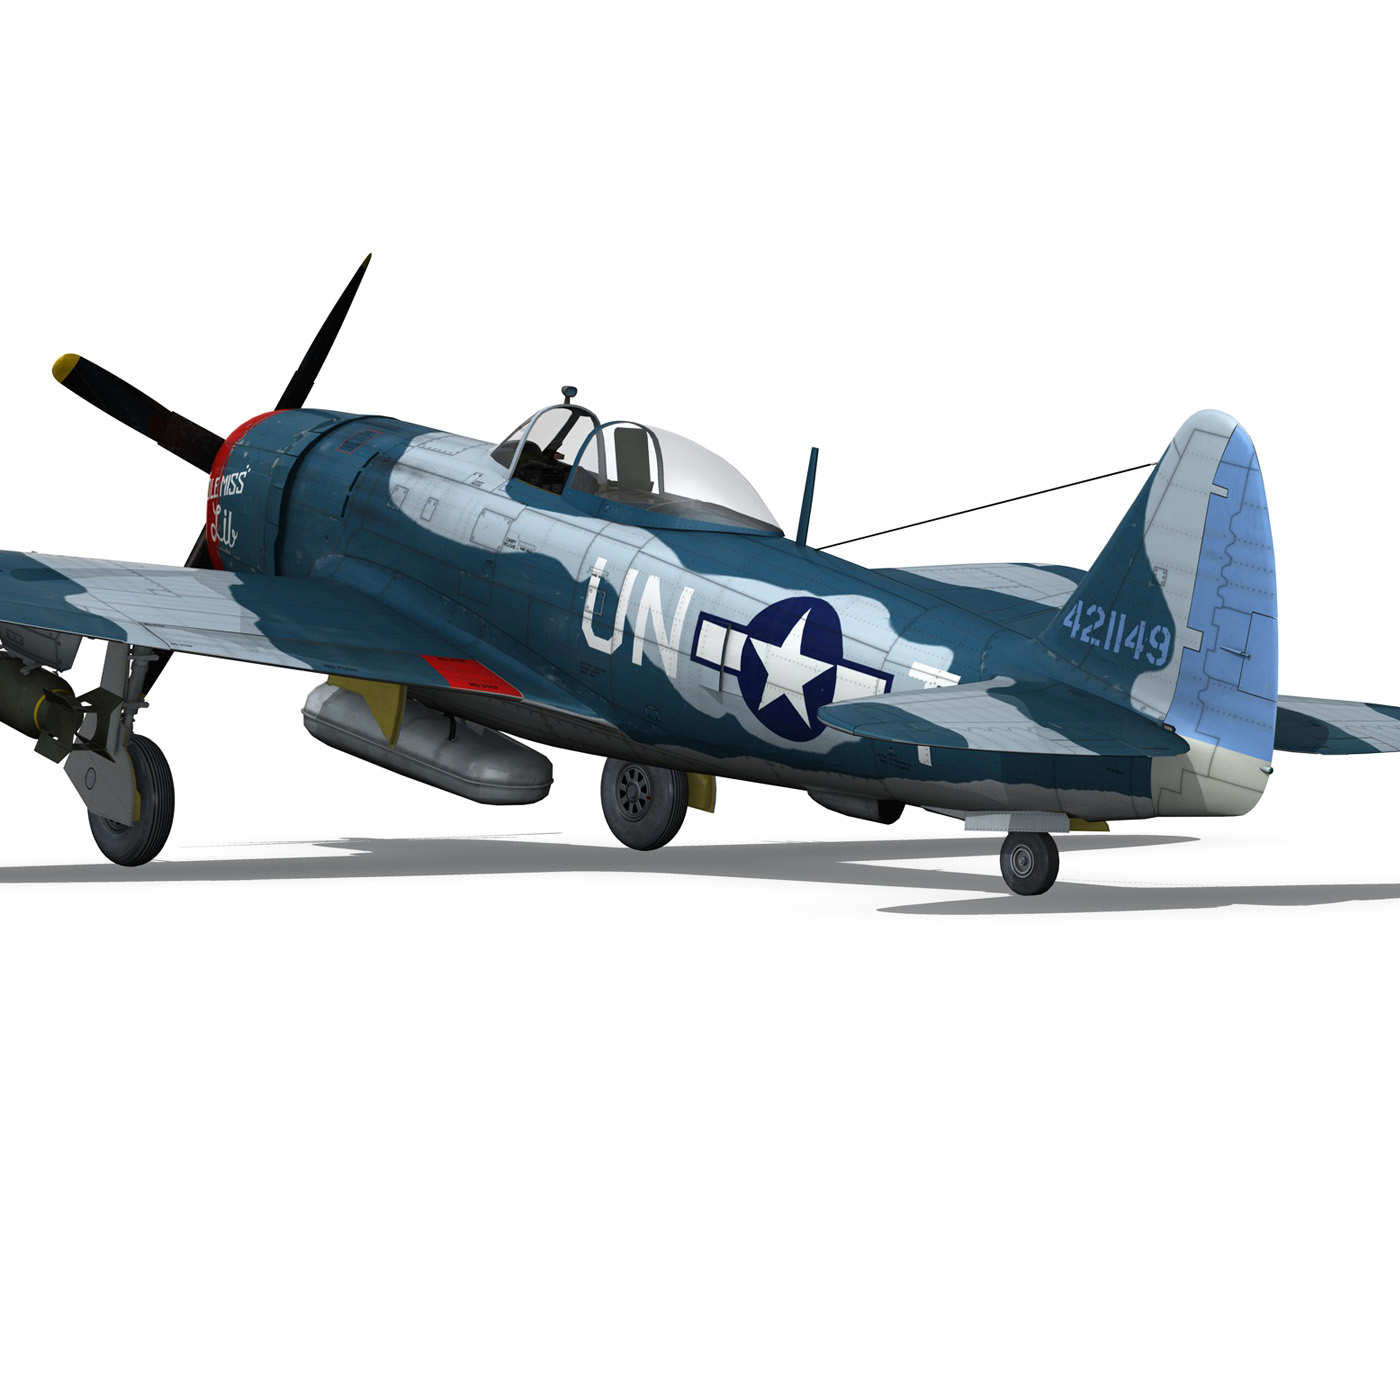 republic p-47 thunderbolt – ole miss lib 3d model fbx c4d lwo obj 274285